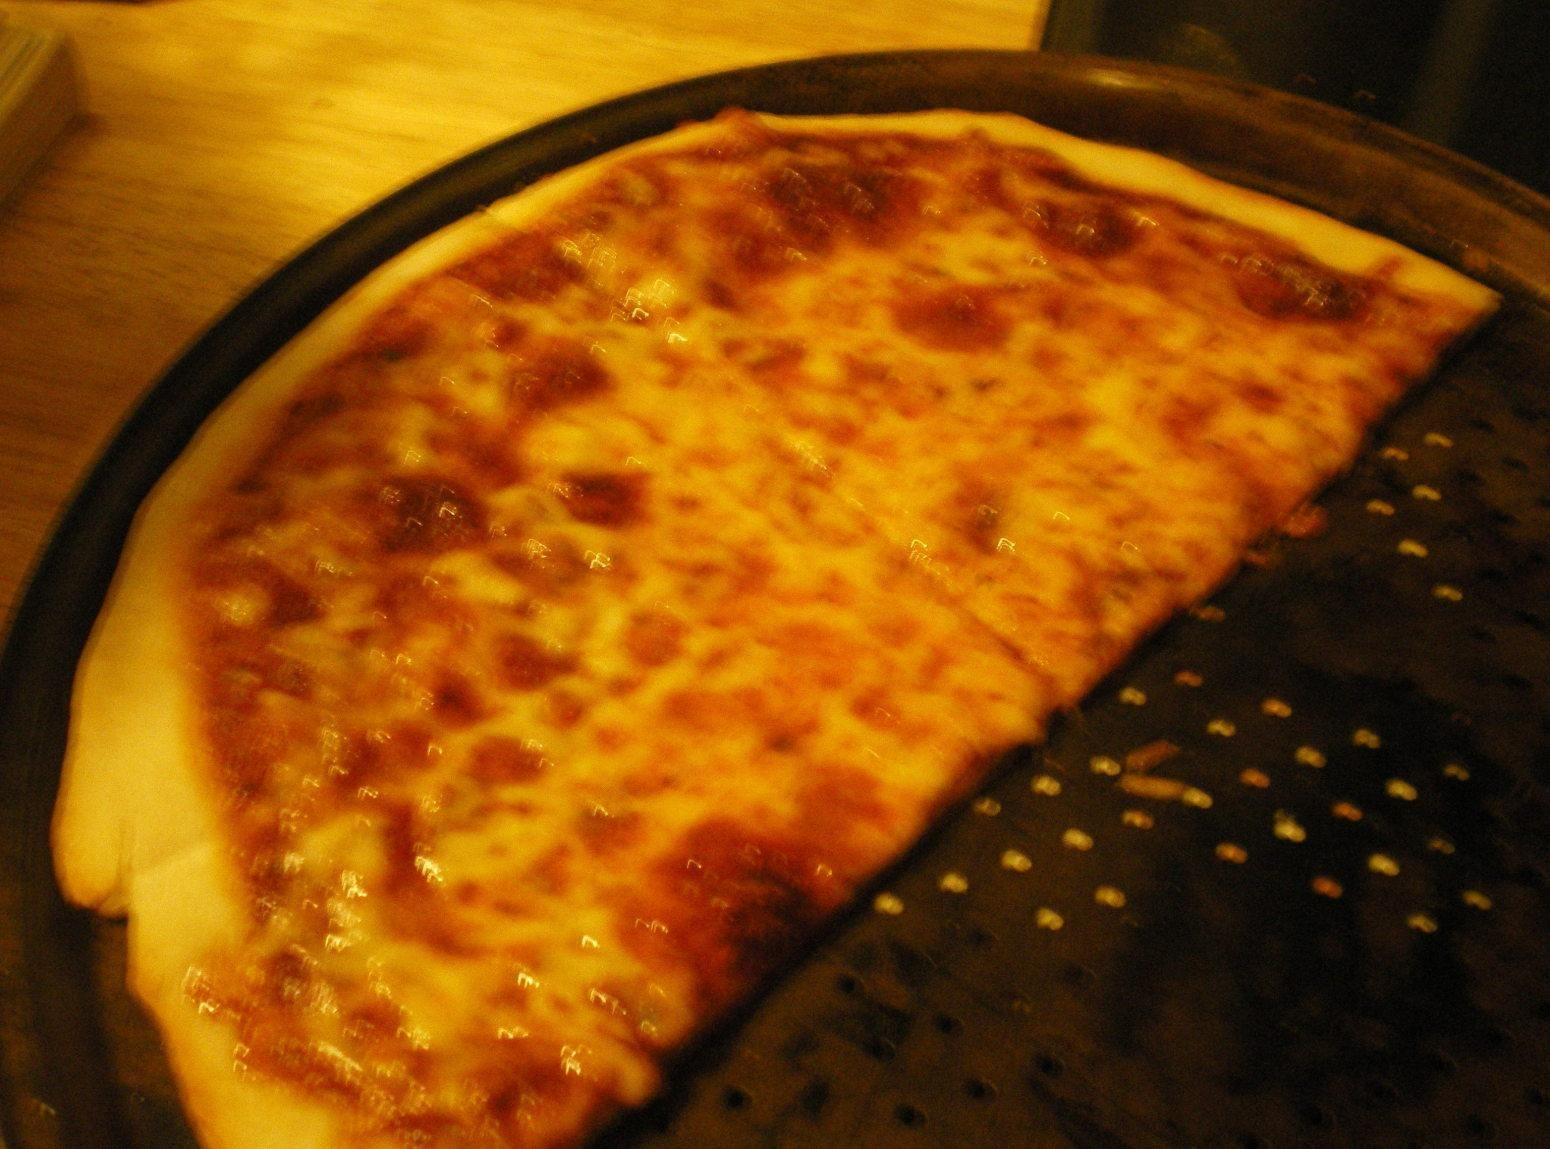 I have been trying to master New York Style Pizza Crust for years.  I finally came up with a crust that is perfect.  Light, crispy and chewy.  It has a depth of flavor from being refrigerated over night.  This crust does require you to do some hand kneading-but it is worth it.  The recipe makes 2-12 inch pies - one for now and one for later.  The sauce is super simple and perfect for this pizza.  Make it the same day you make the crust and the next day you will have an amazing pizza you…